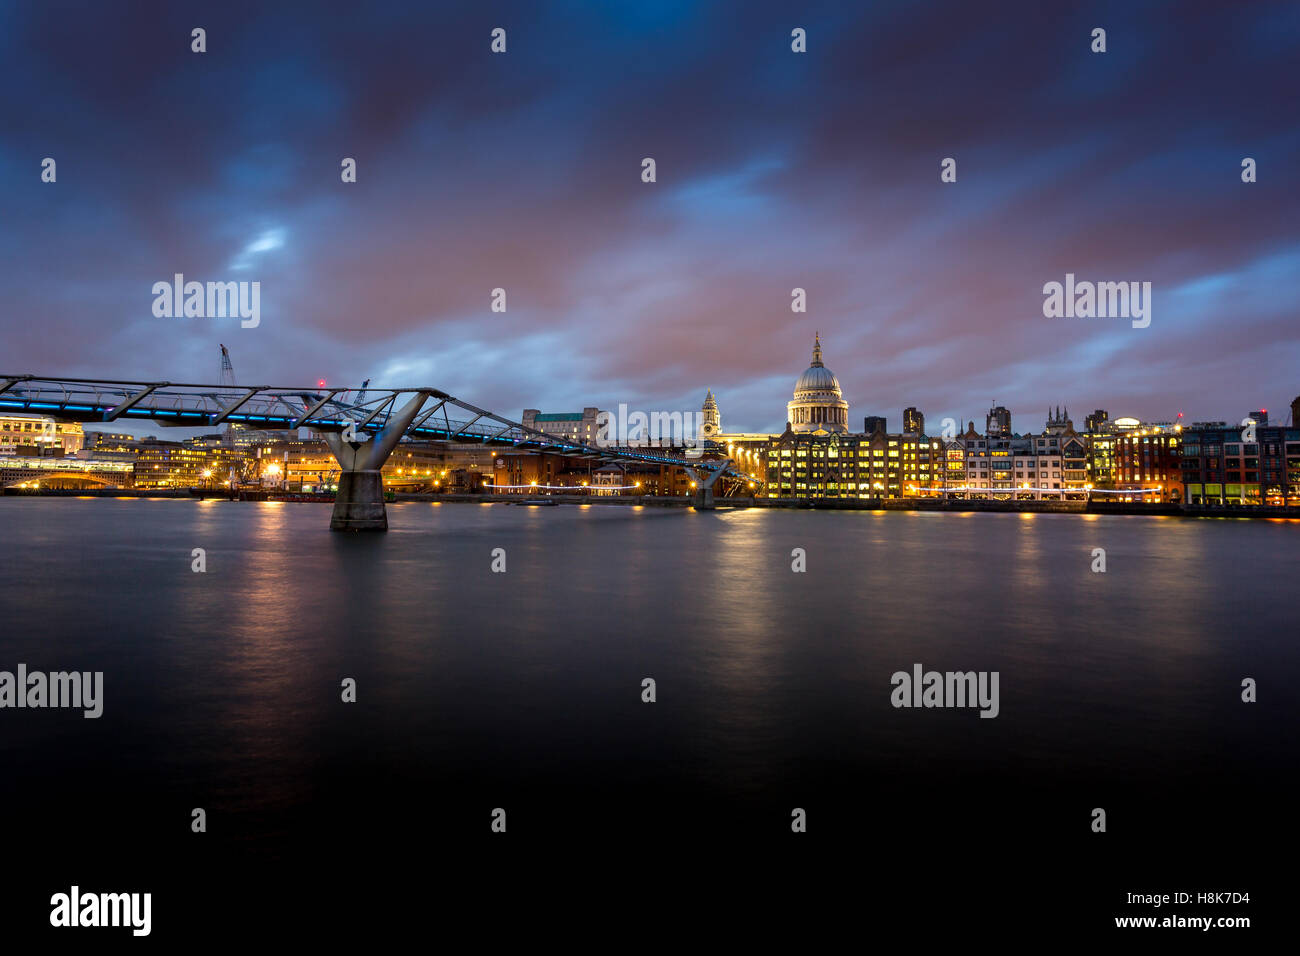 Millennium footbridge London with St Paul's Cathedral at dusk - Stock Image